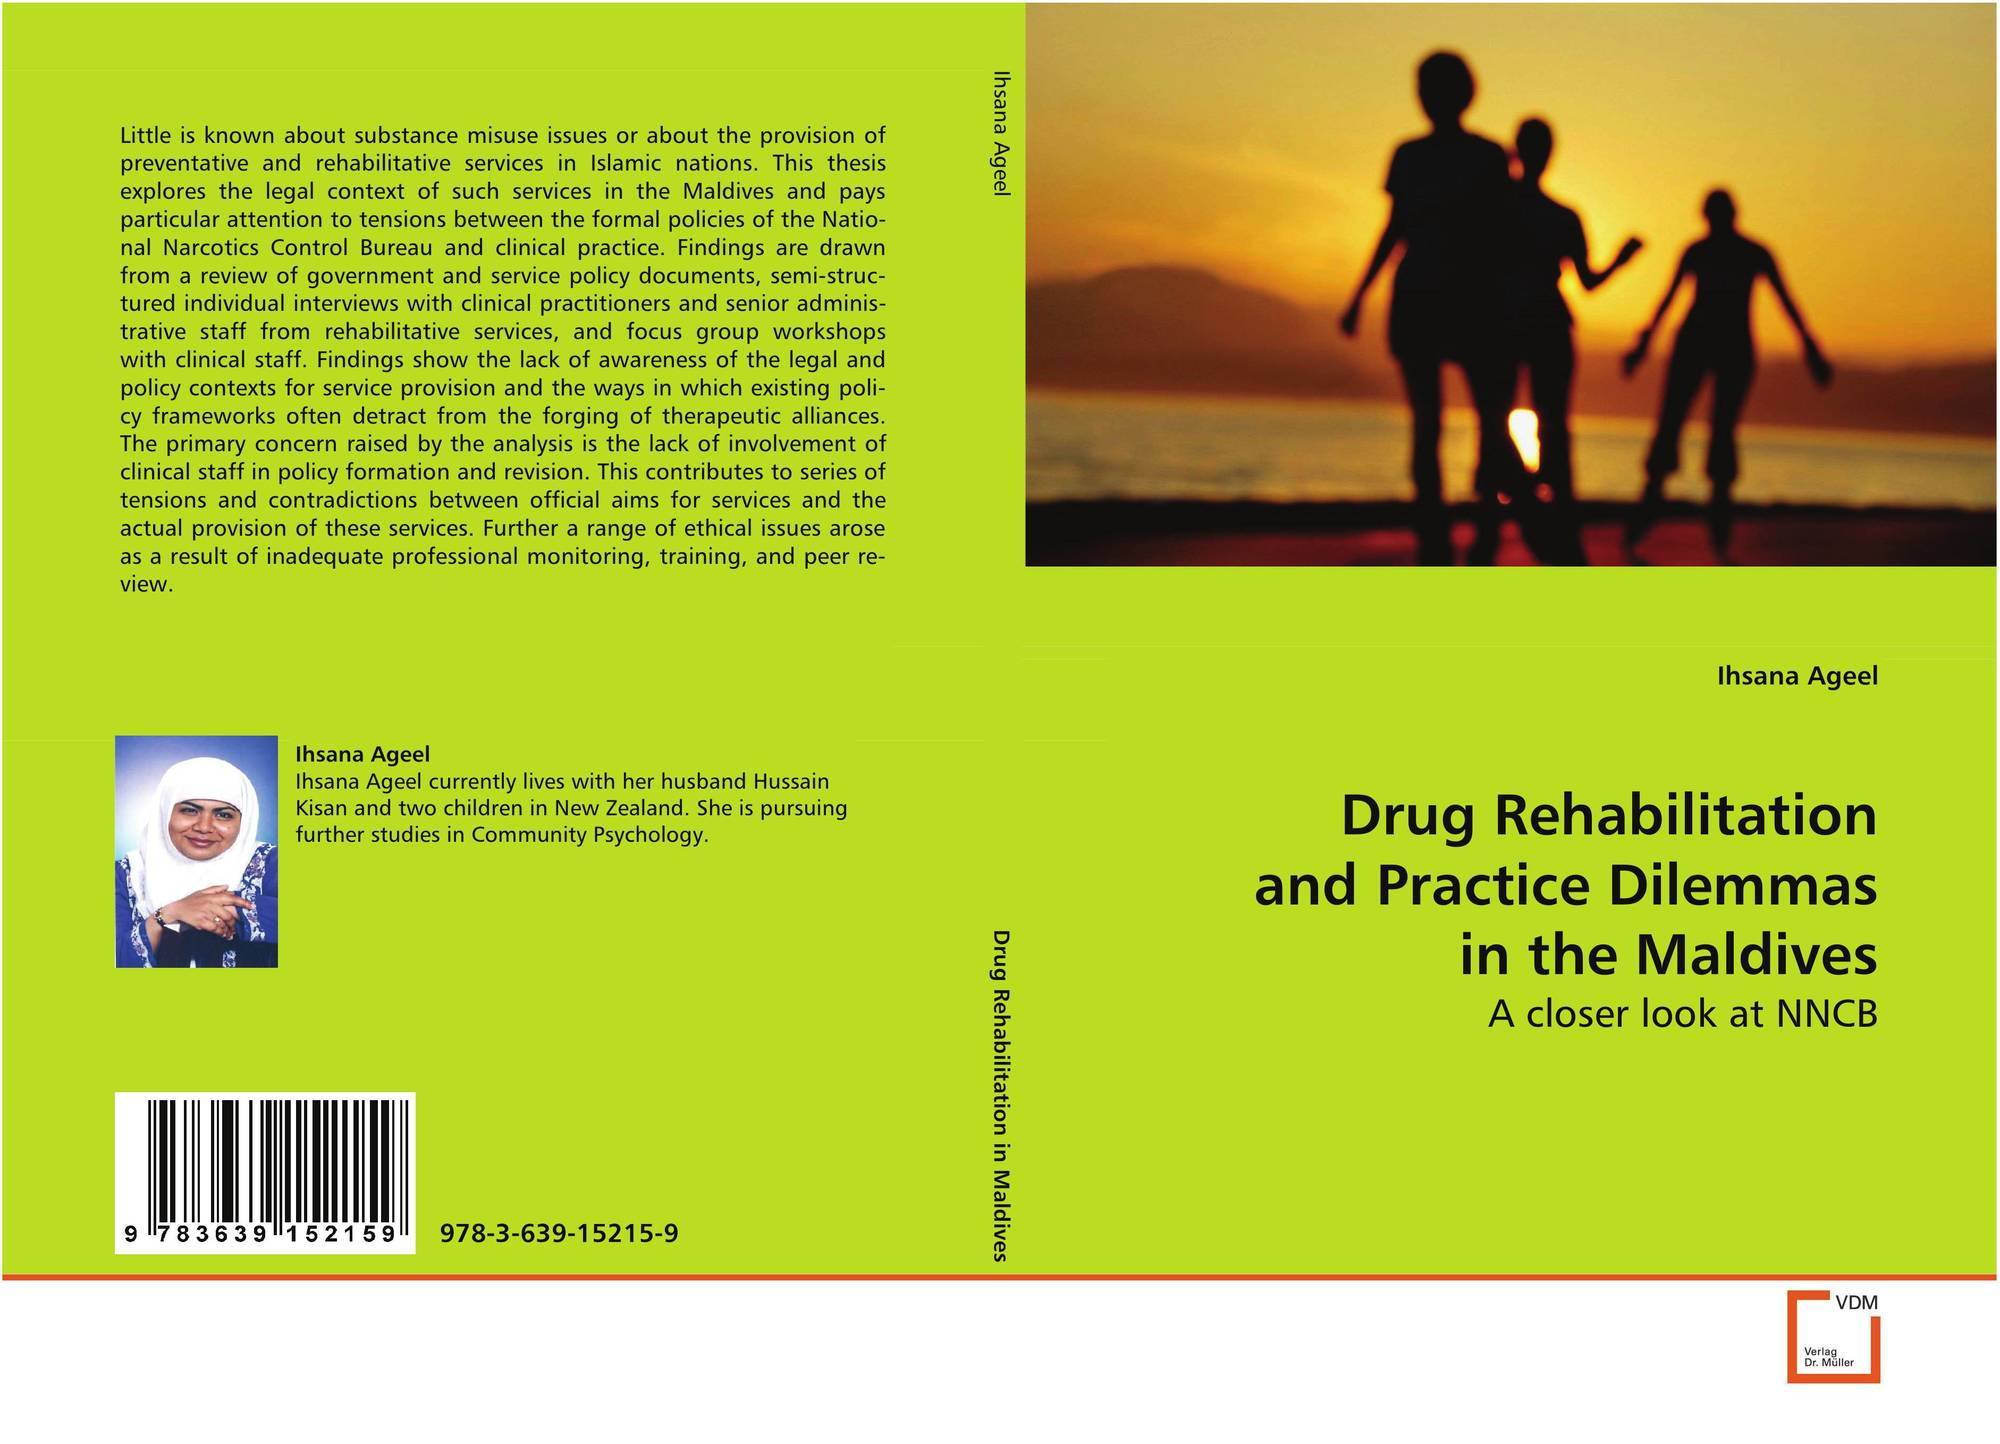 drug dilemmas Journal of drug issues (jdi), published quarterly, has been dedicated since its inception to providing a professional and scholarly forum centered on the national and international problems associated with drugs, especially illicit drugs it is a refereed publication with international contributors and subscribers.